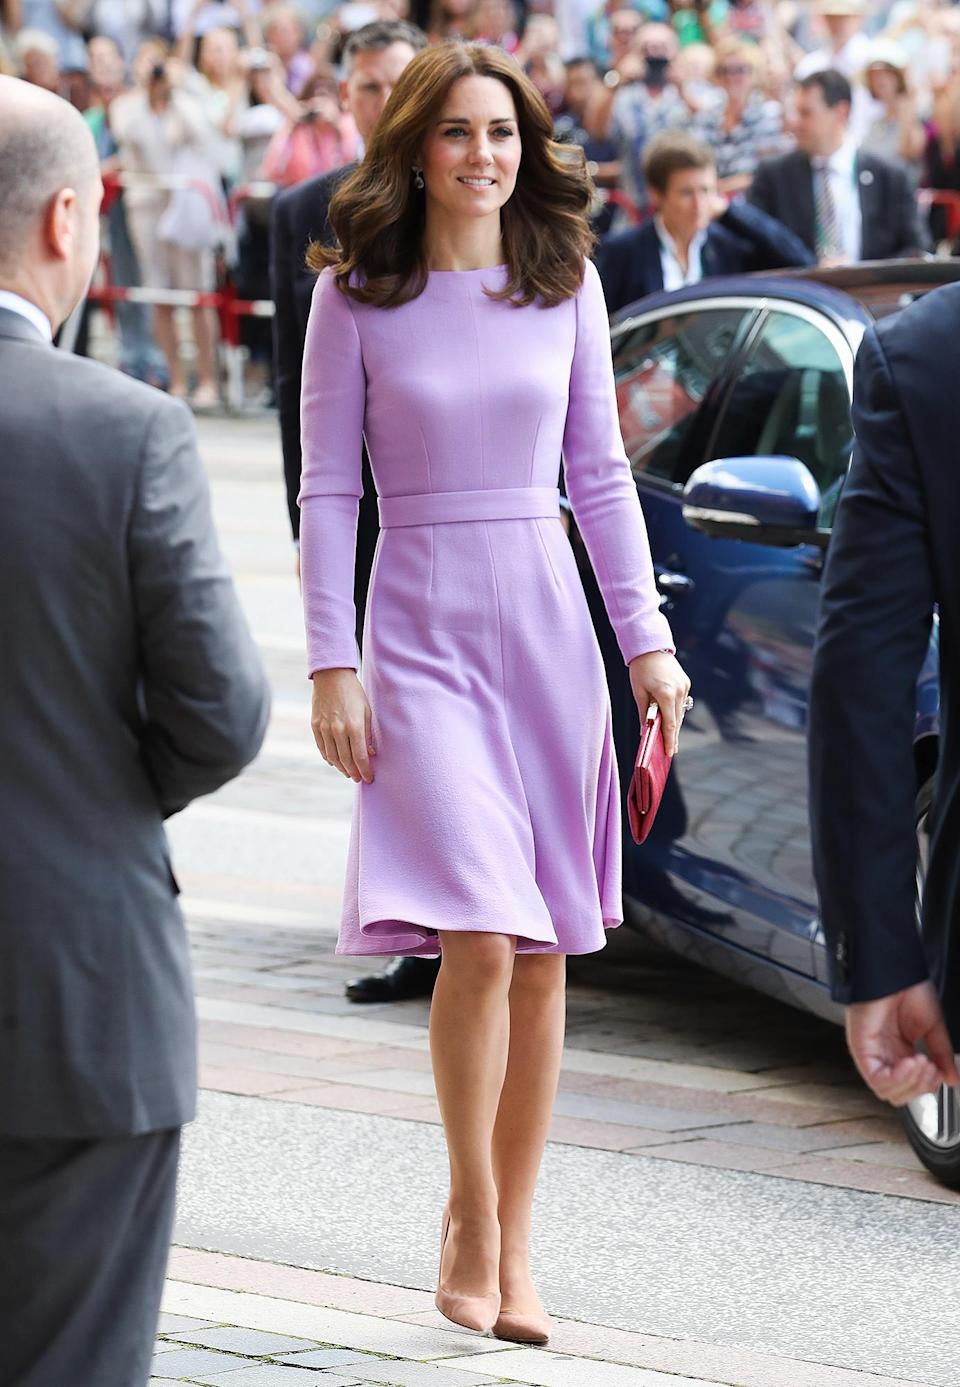 <p><strong>When:</strong> July 21, 2017 <strong>Where:</strong> Berlin Hauptbahnhof main railway station. <strong>Wearing:</strong> Emilia Wickstead lavender dress <strong>Get the Look:</strong> Tom Ford Zip-Trim Scoop-Back Long-Sleeve Dress, $1,990; <span>neimanmarcus.com</span> Tie Sleeve Wrap Dress, $90; <span>topshop.com</span> Jack by BB Dakota Simone Rayon Crepe Lace-Front Dress + Slip; $40; <span>zappos.com</span> Gianni Bini Piper Cold-Shoulder Wrap Dress, $26.70; <span>dillards.com</span></p>